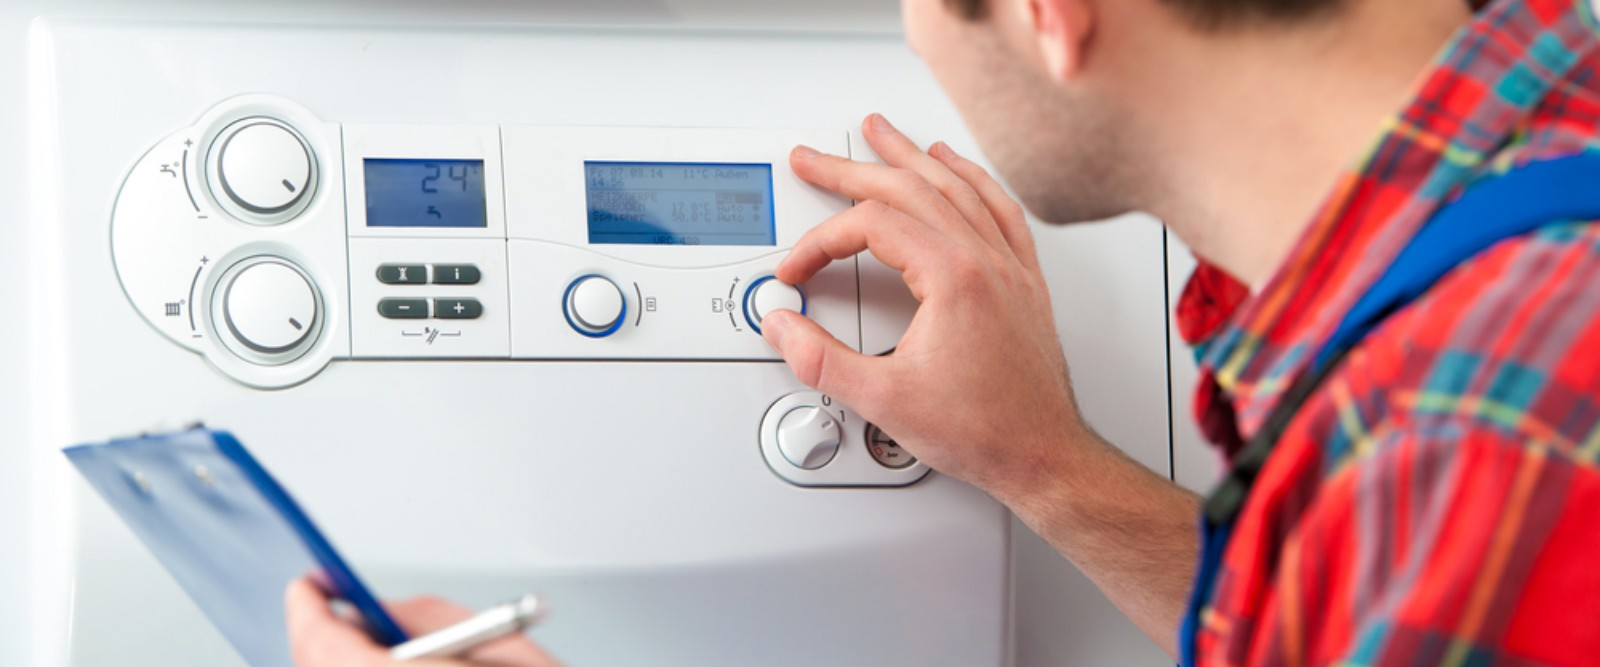 Boiler Repair Service - Gas Safe Registered Experts